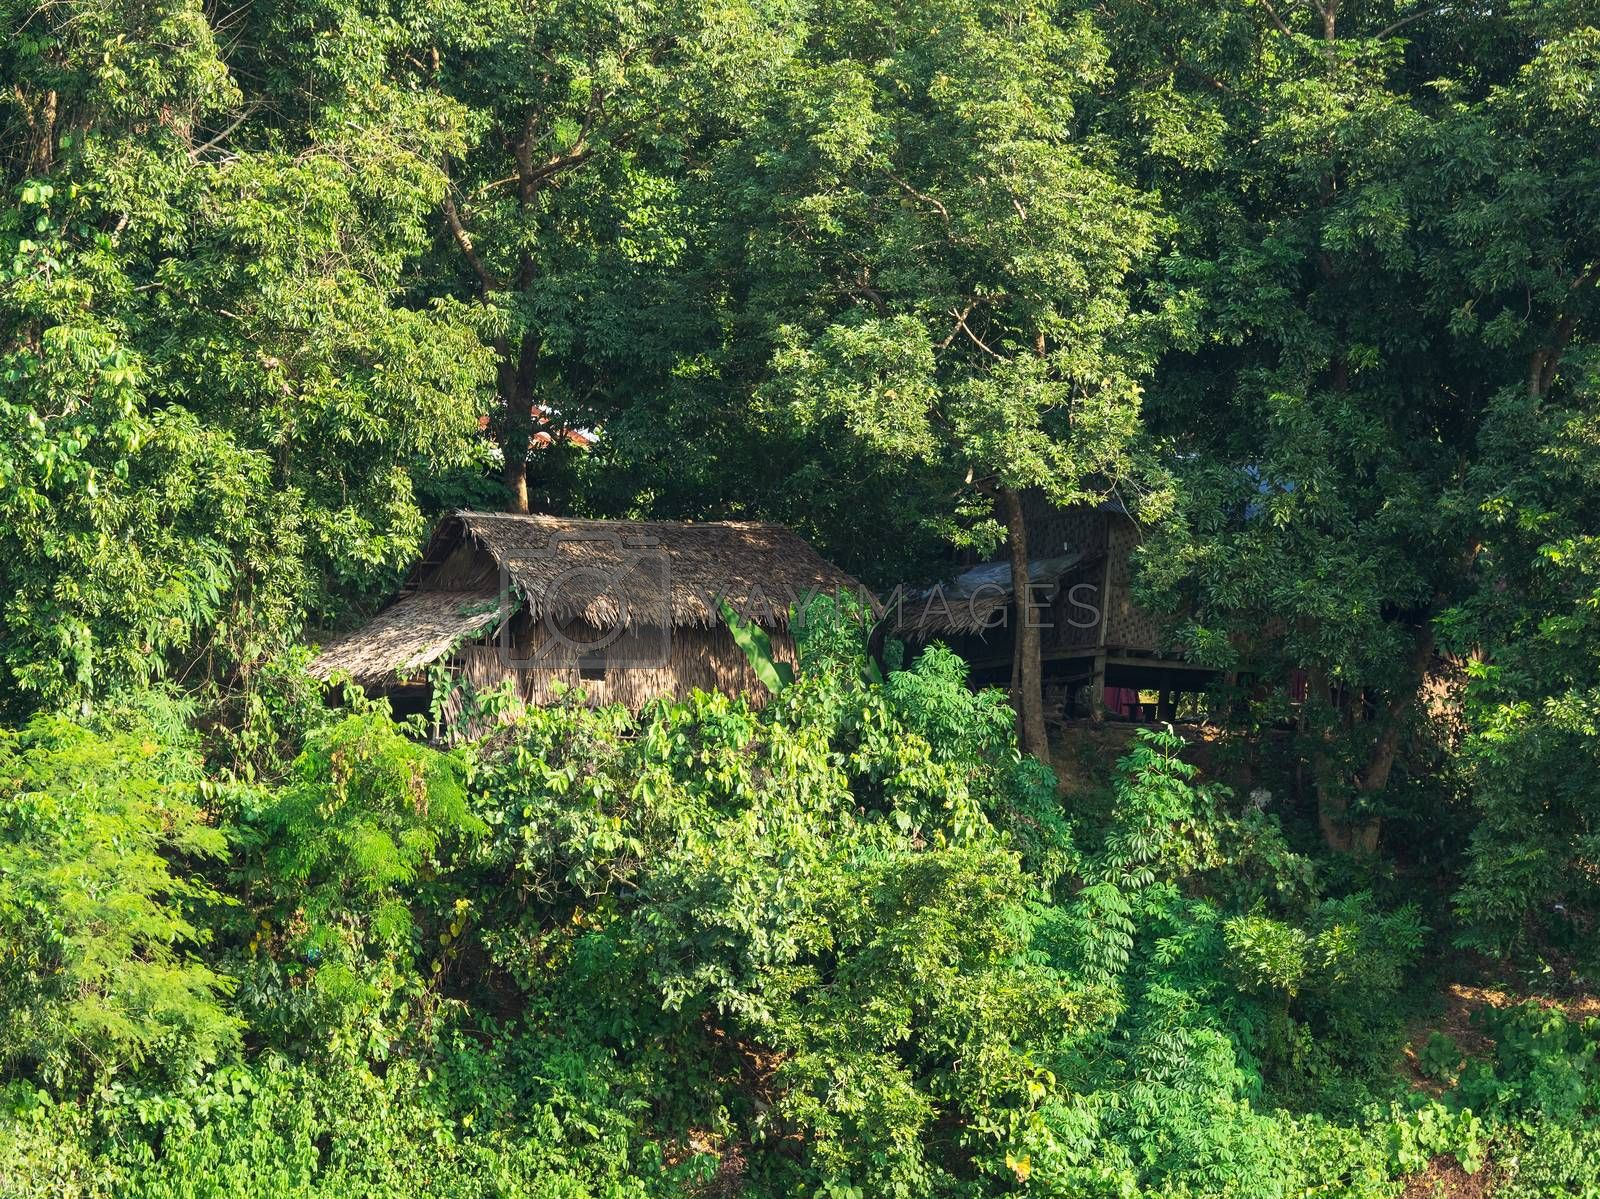 Traditional straw house at a tropical forest in Mrauk U, an ancient town in the Rakhine State of Myanmar.